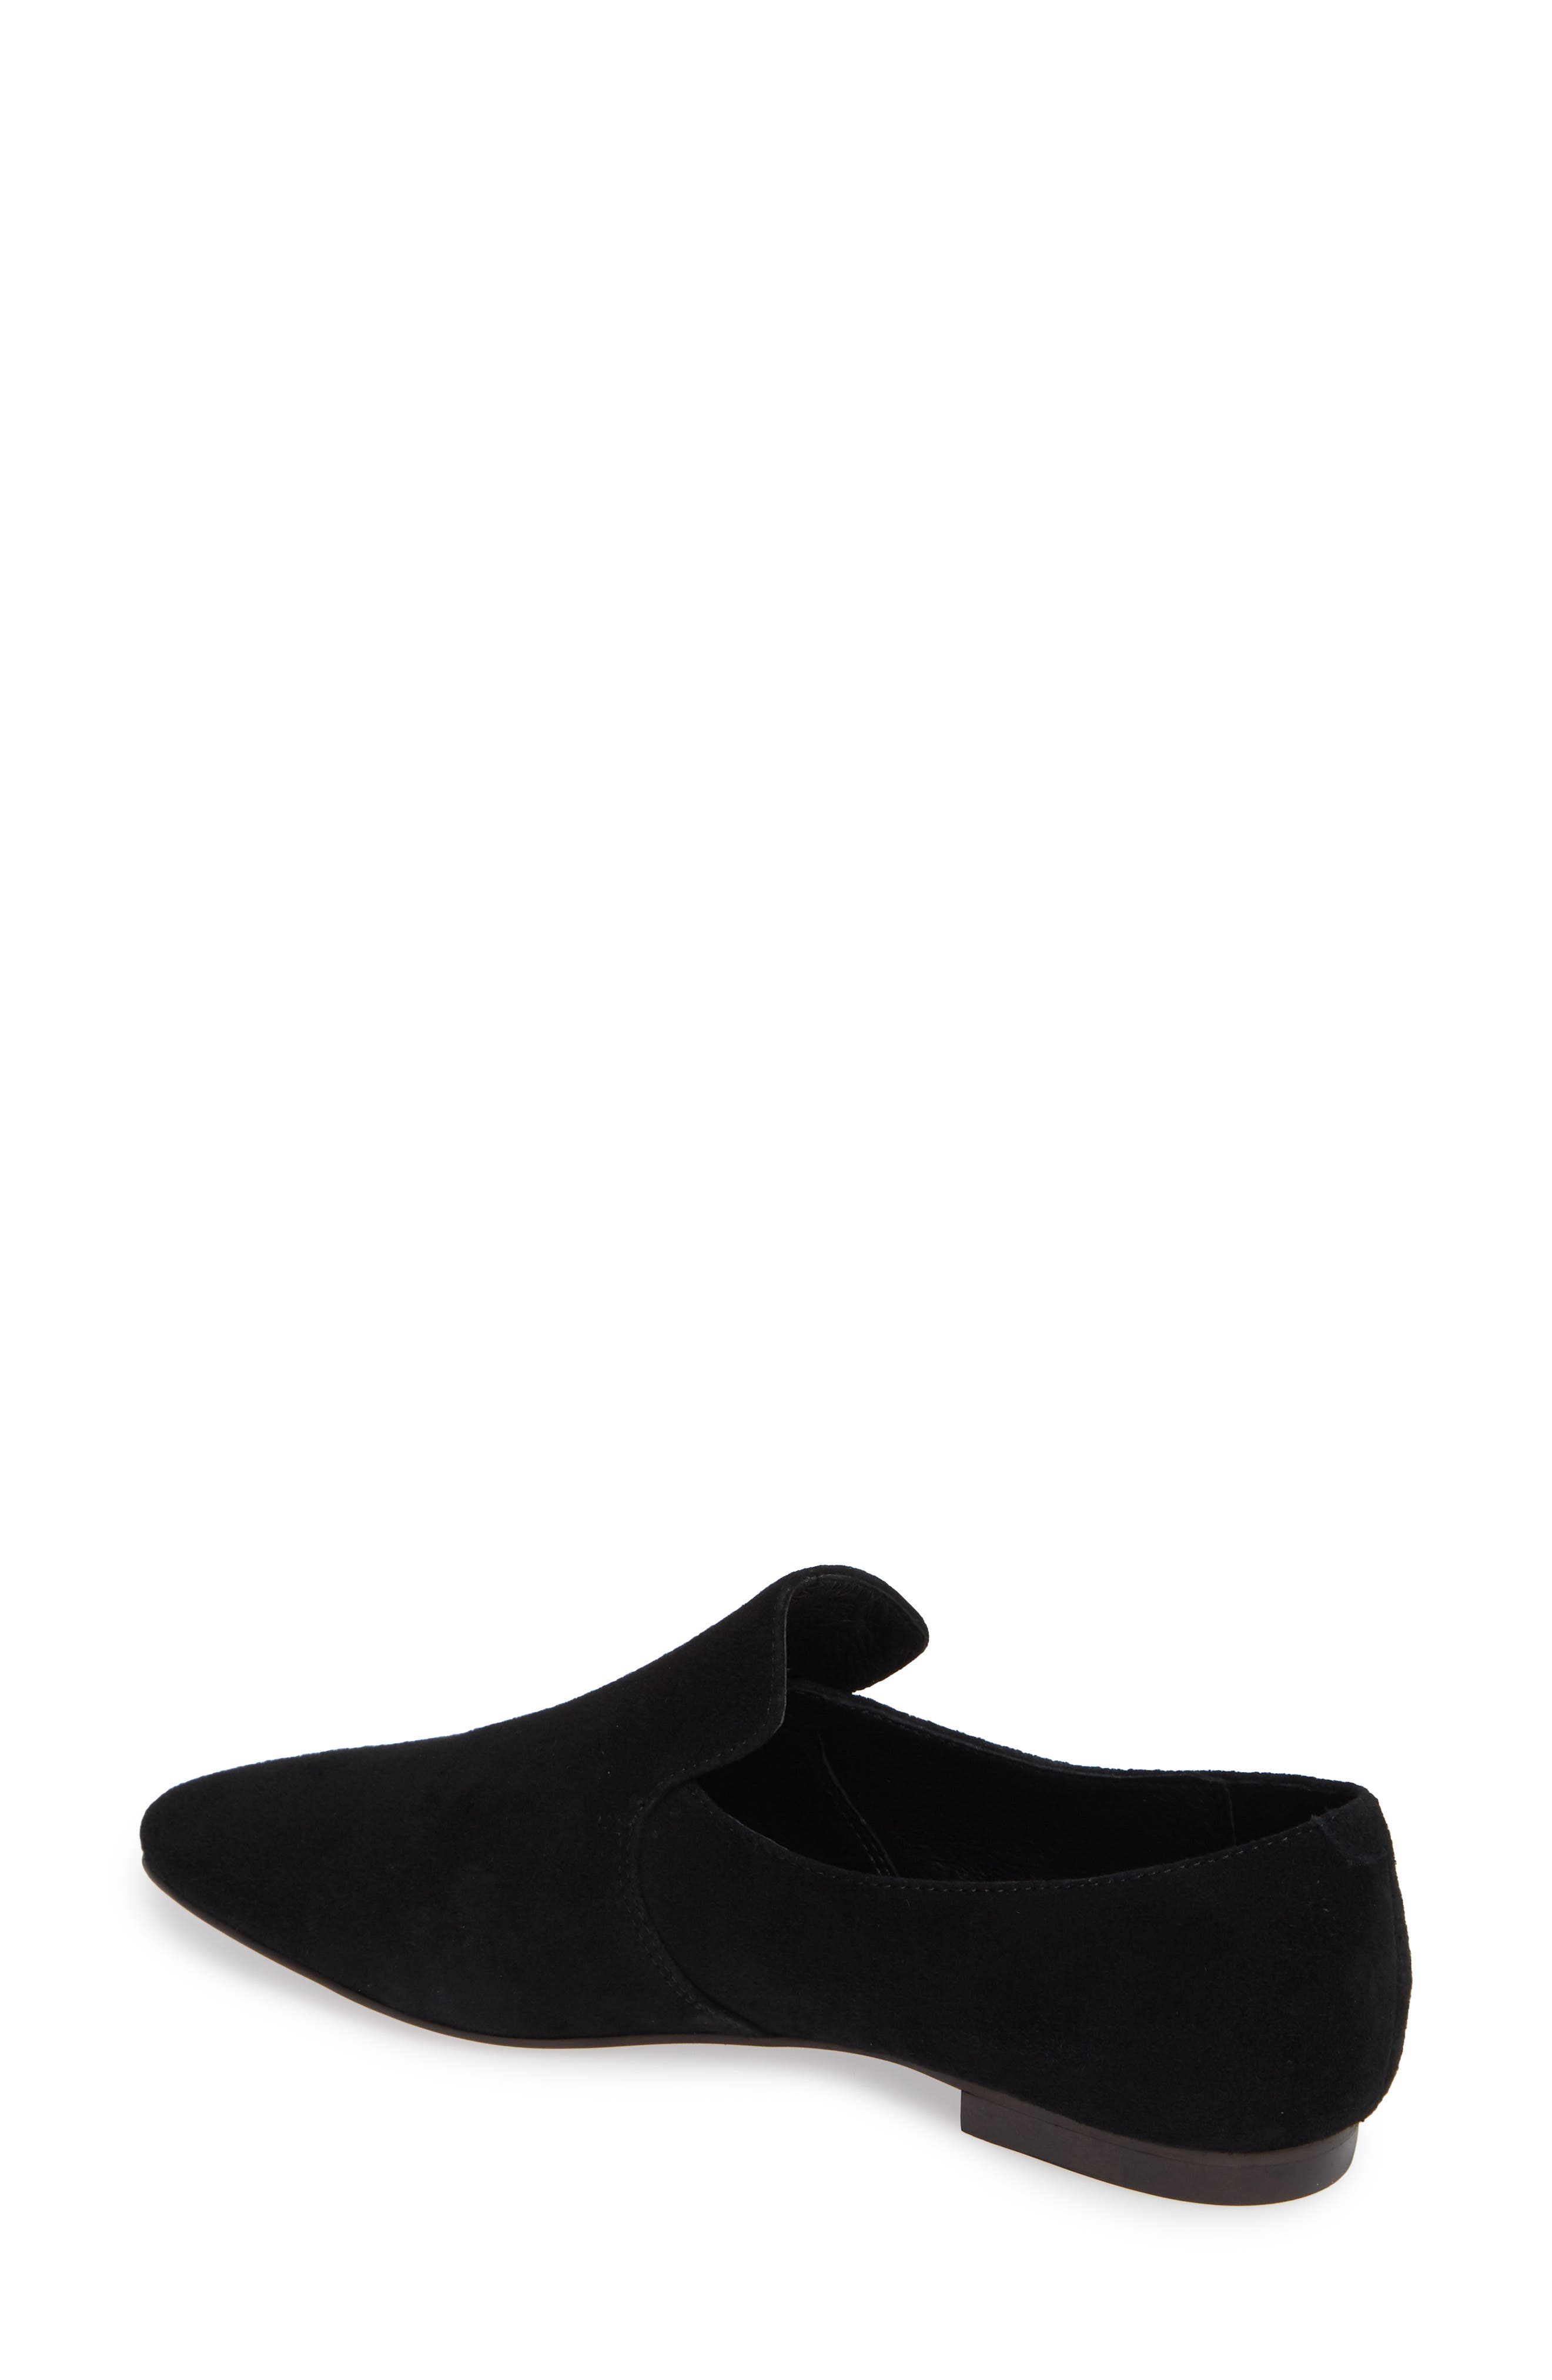 Priestly Loafer,                             Alternate thumbnail 2, color,                             BLACK SUEDE